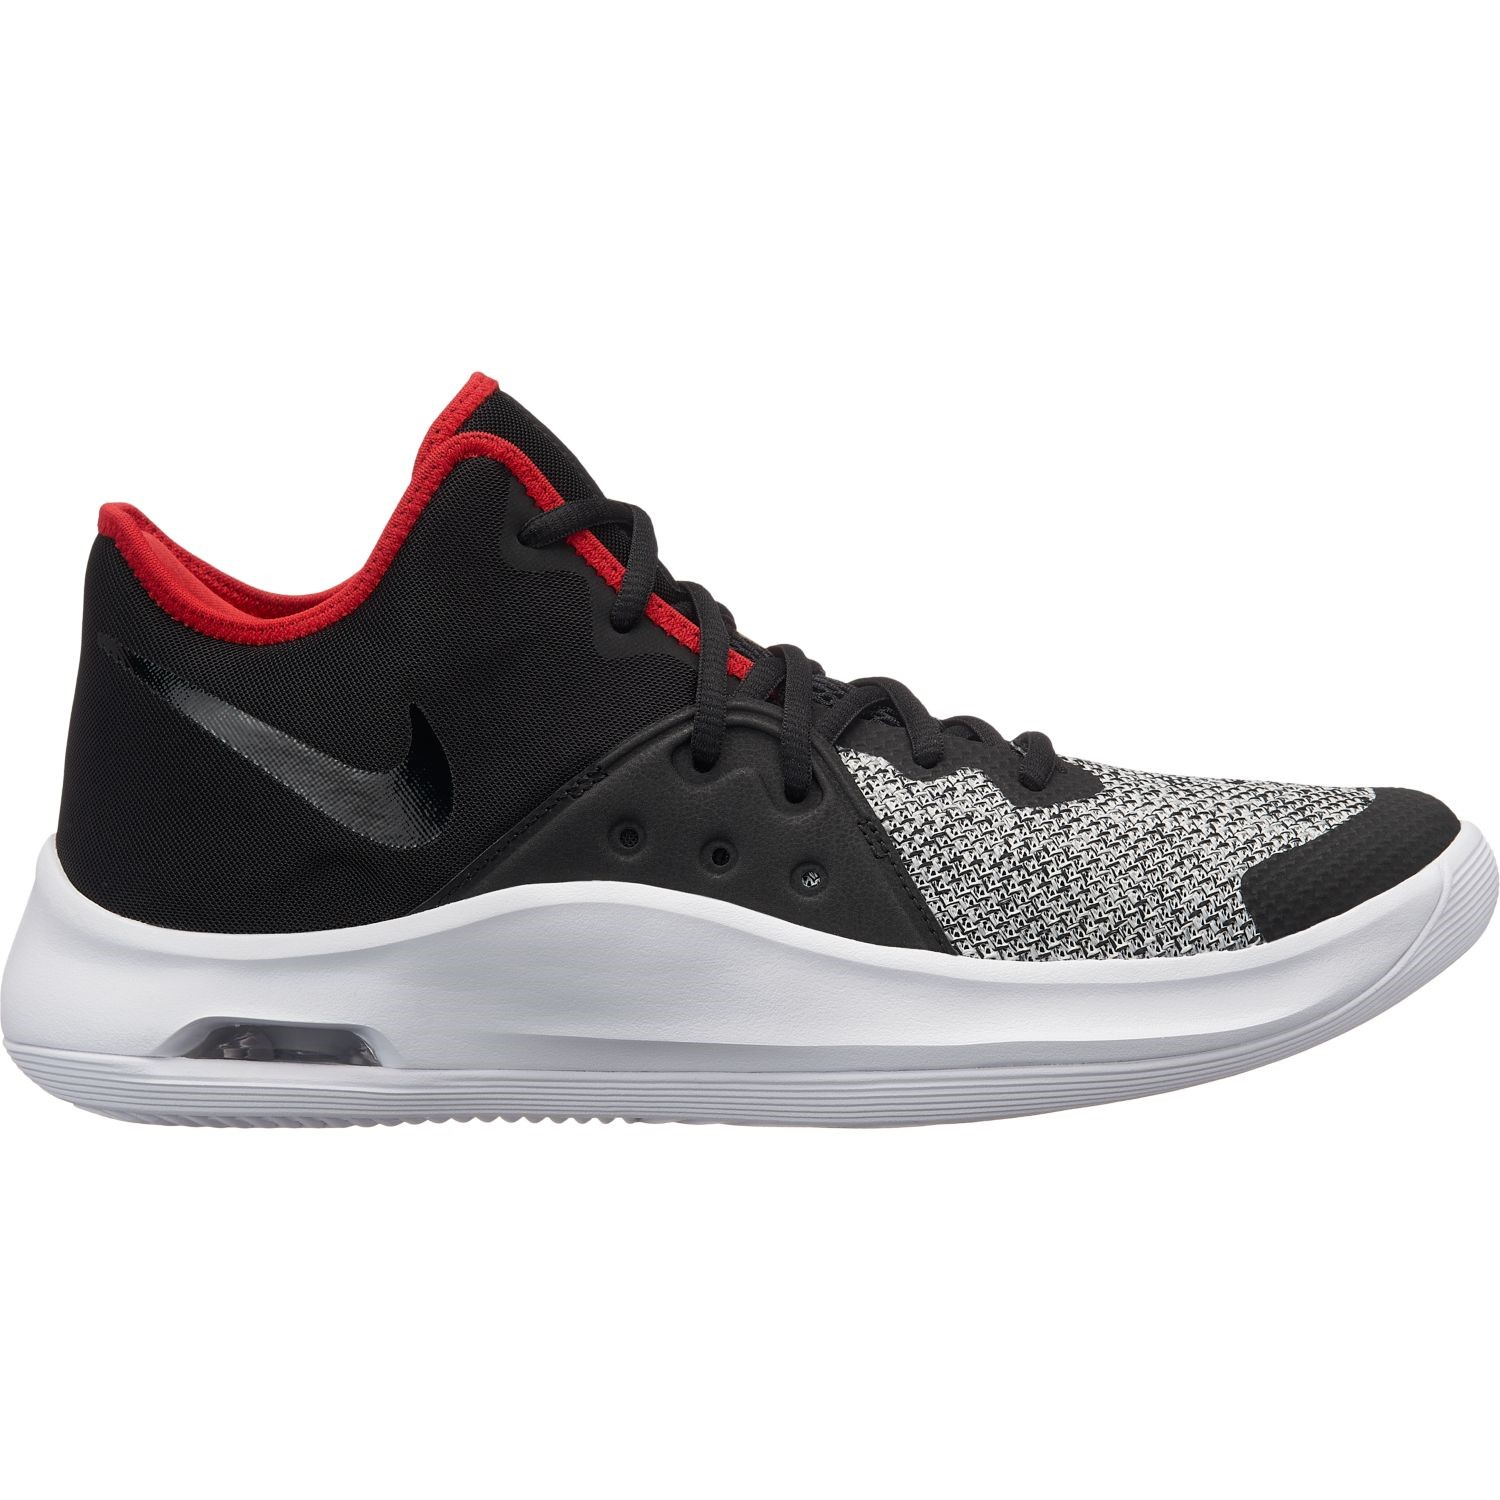 91dbef93608 Nike Air Versatile III - Mens Basketball Shoes - Black White Red ...